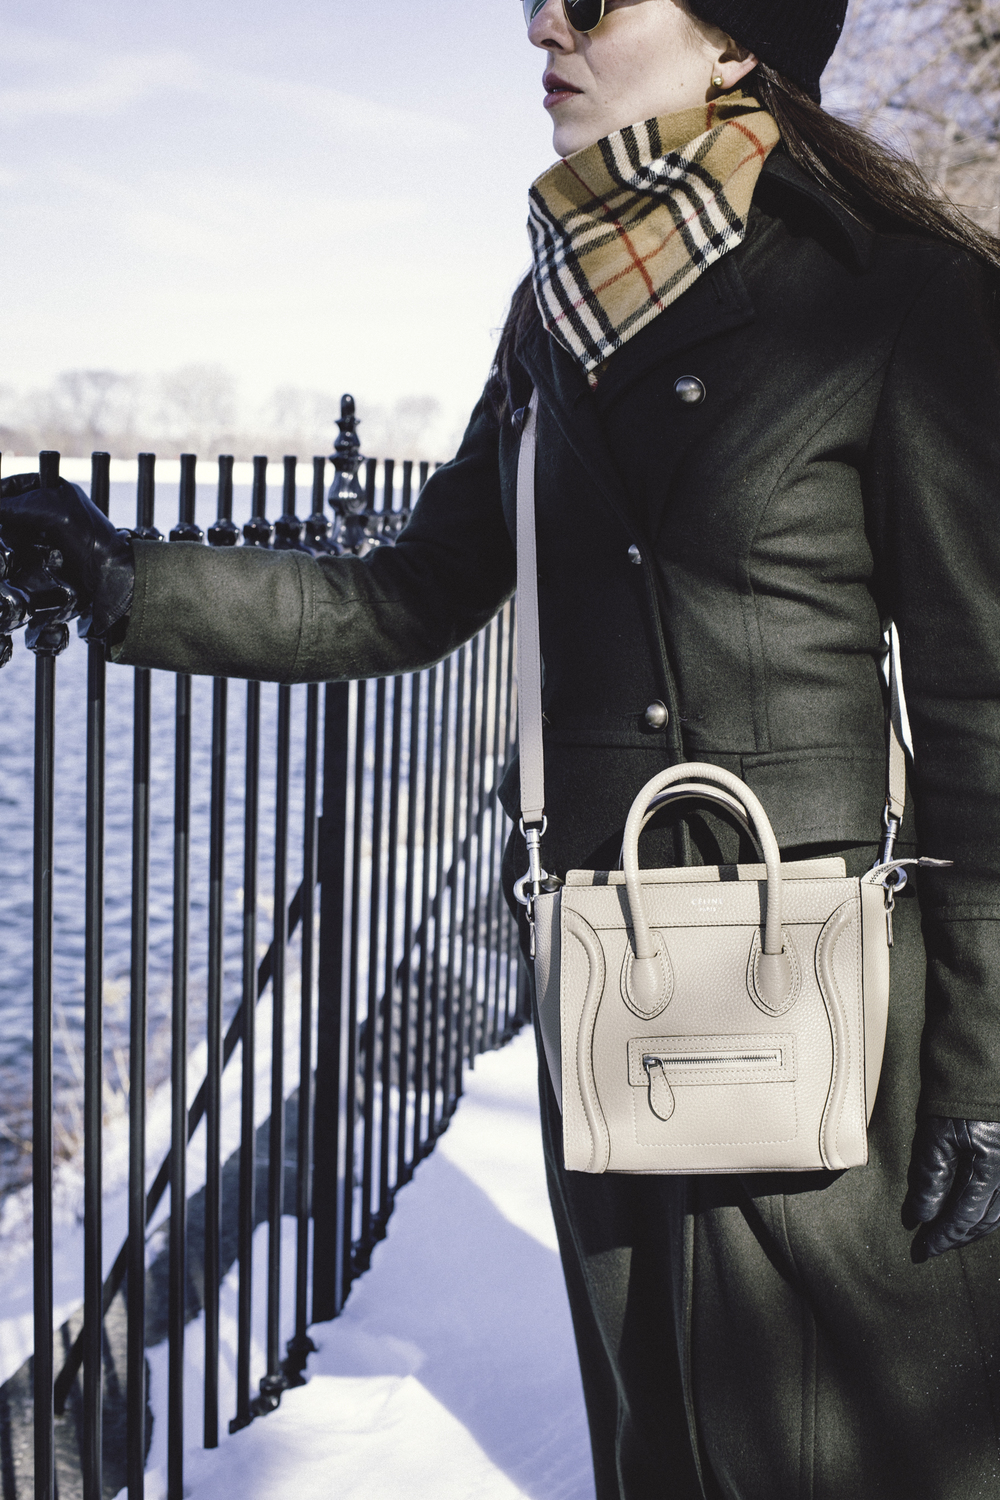 Bag details: the  Celine  Nano crossbody bag in beige.  Photo by  Francisco Graciano .